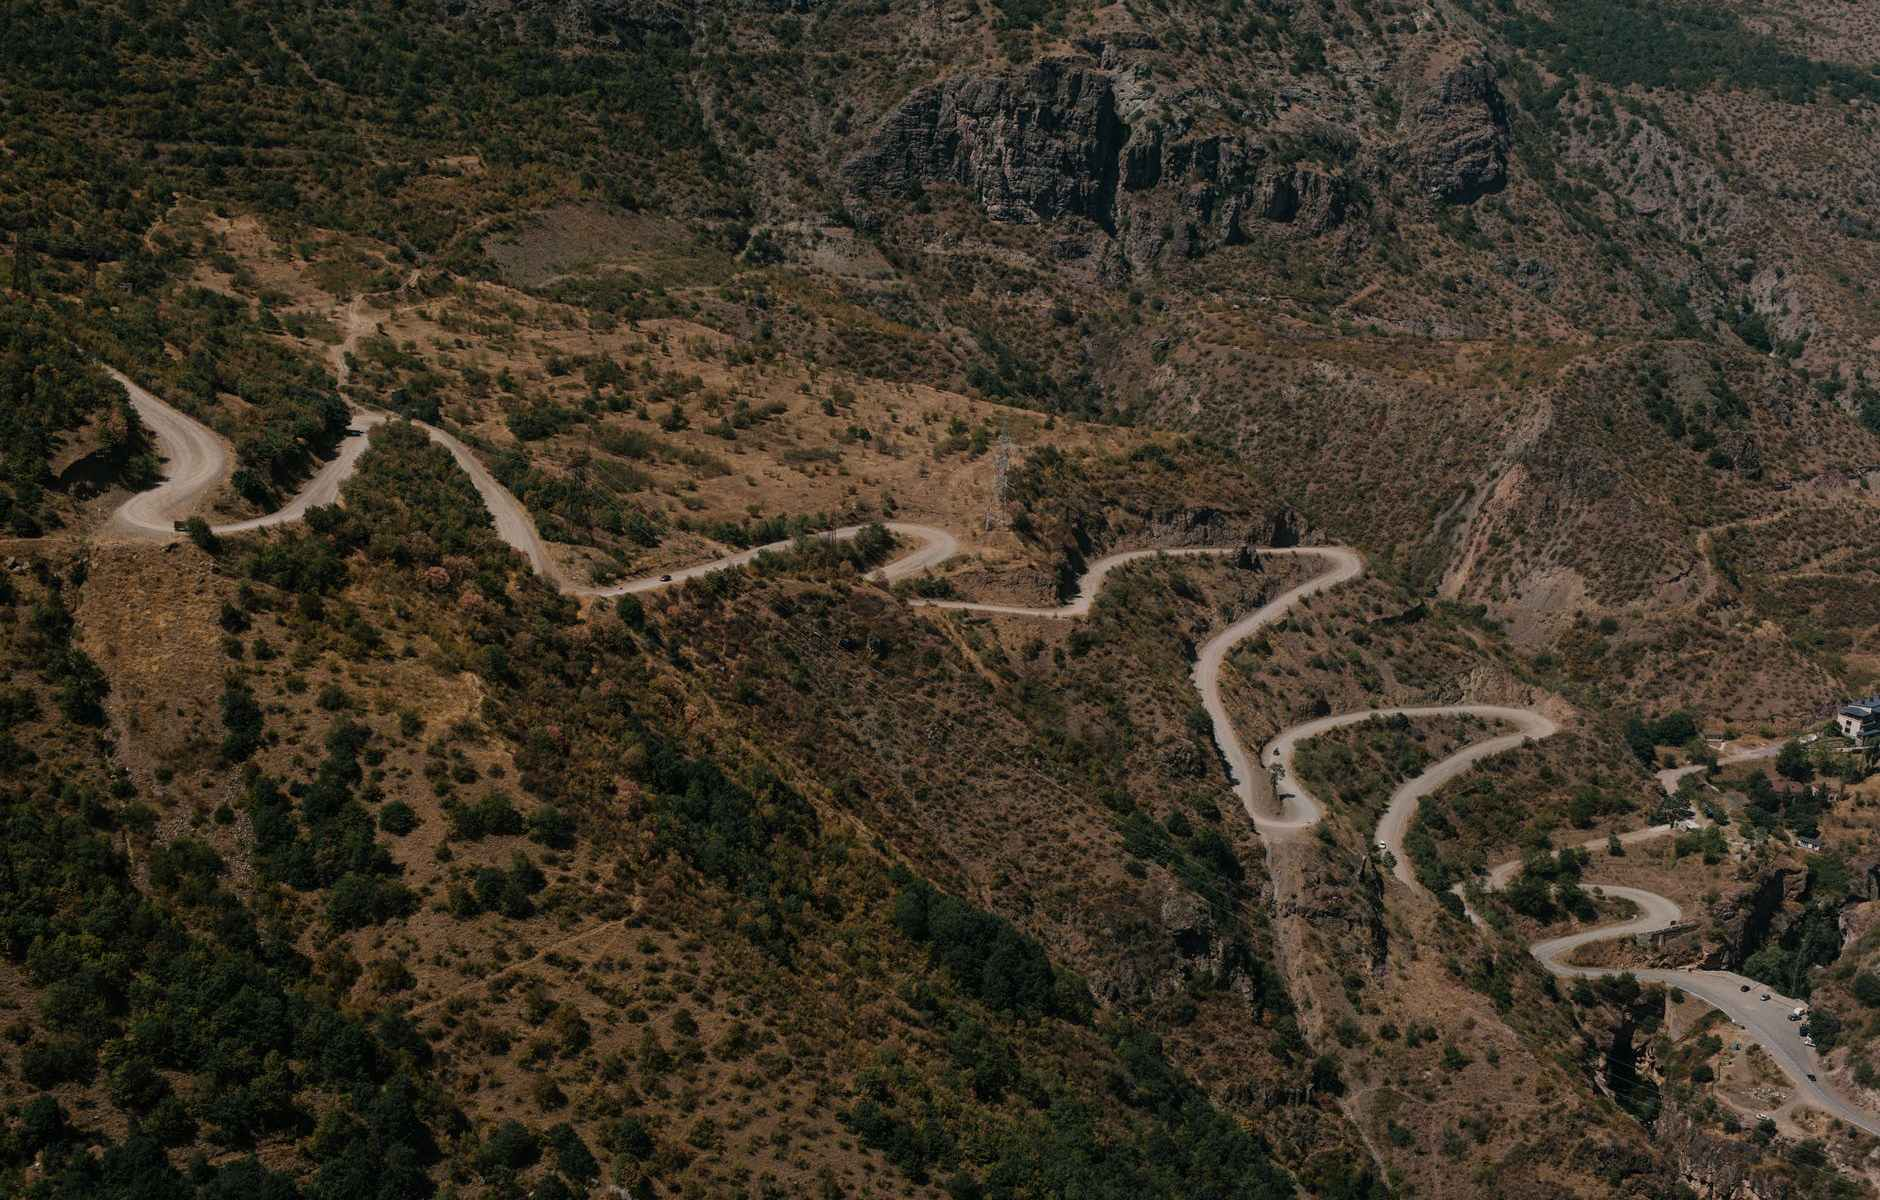 asphalt winding roadway on mountain slope